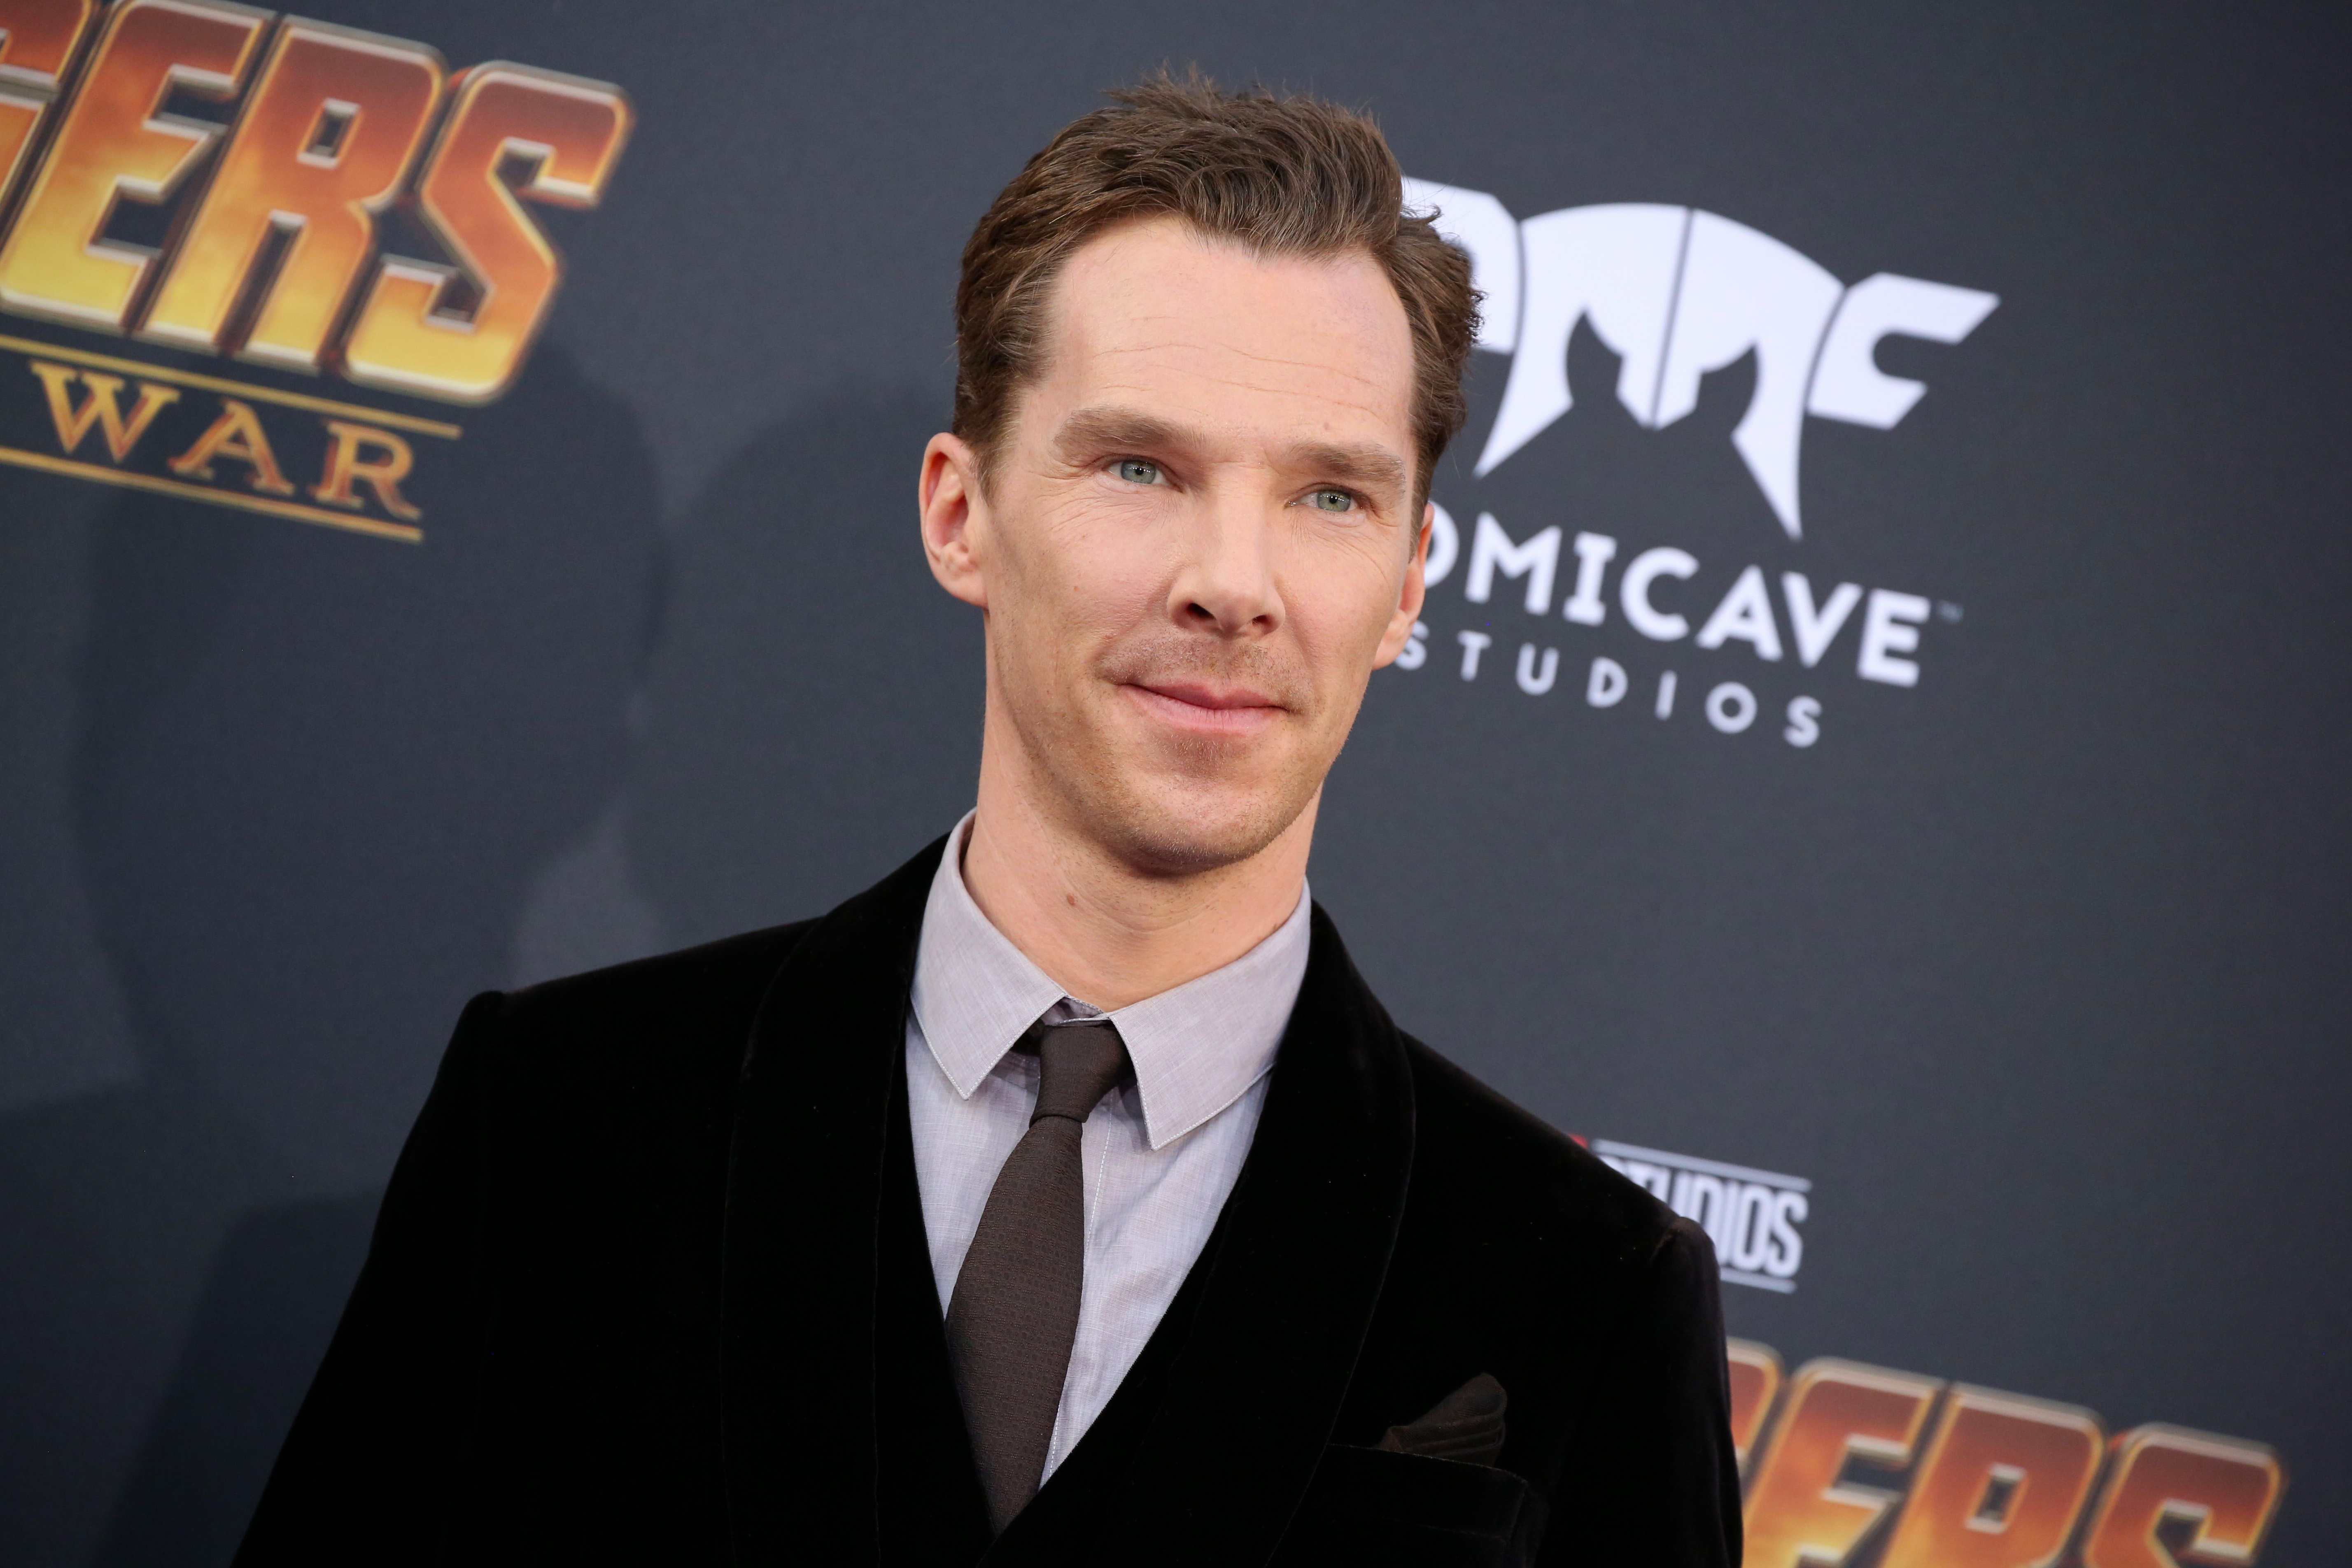 'Avengers' Star Benedict Cumberbatch Calls For Equal Pay For Female Co-Stars